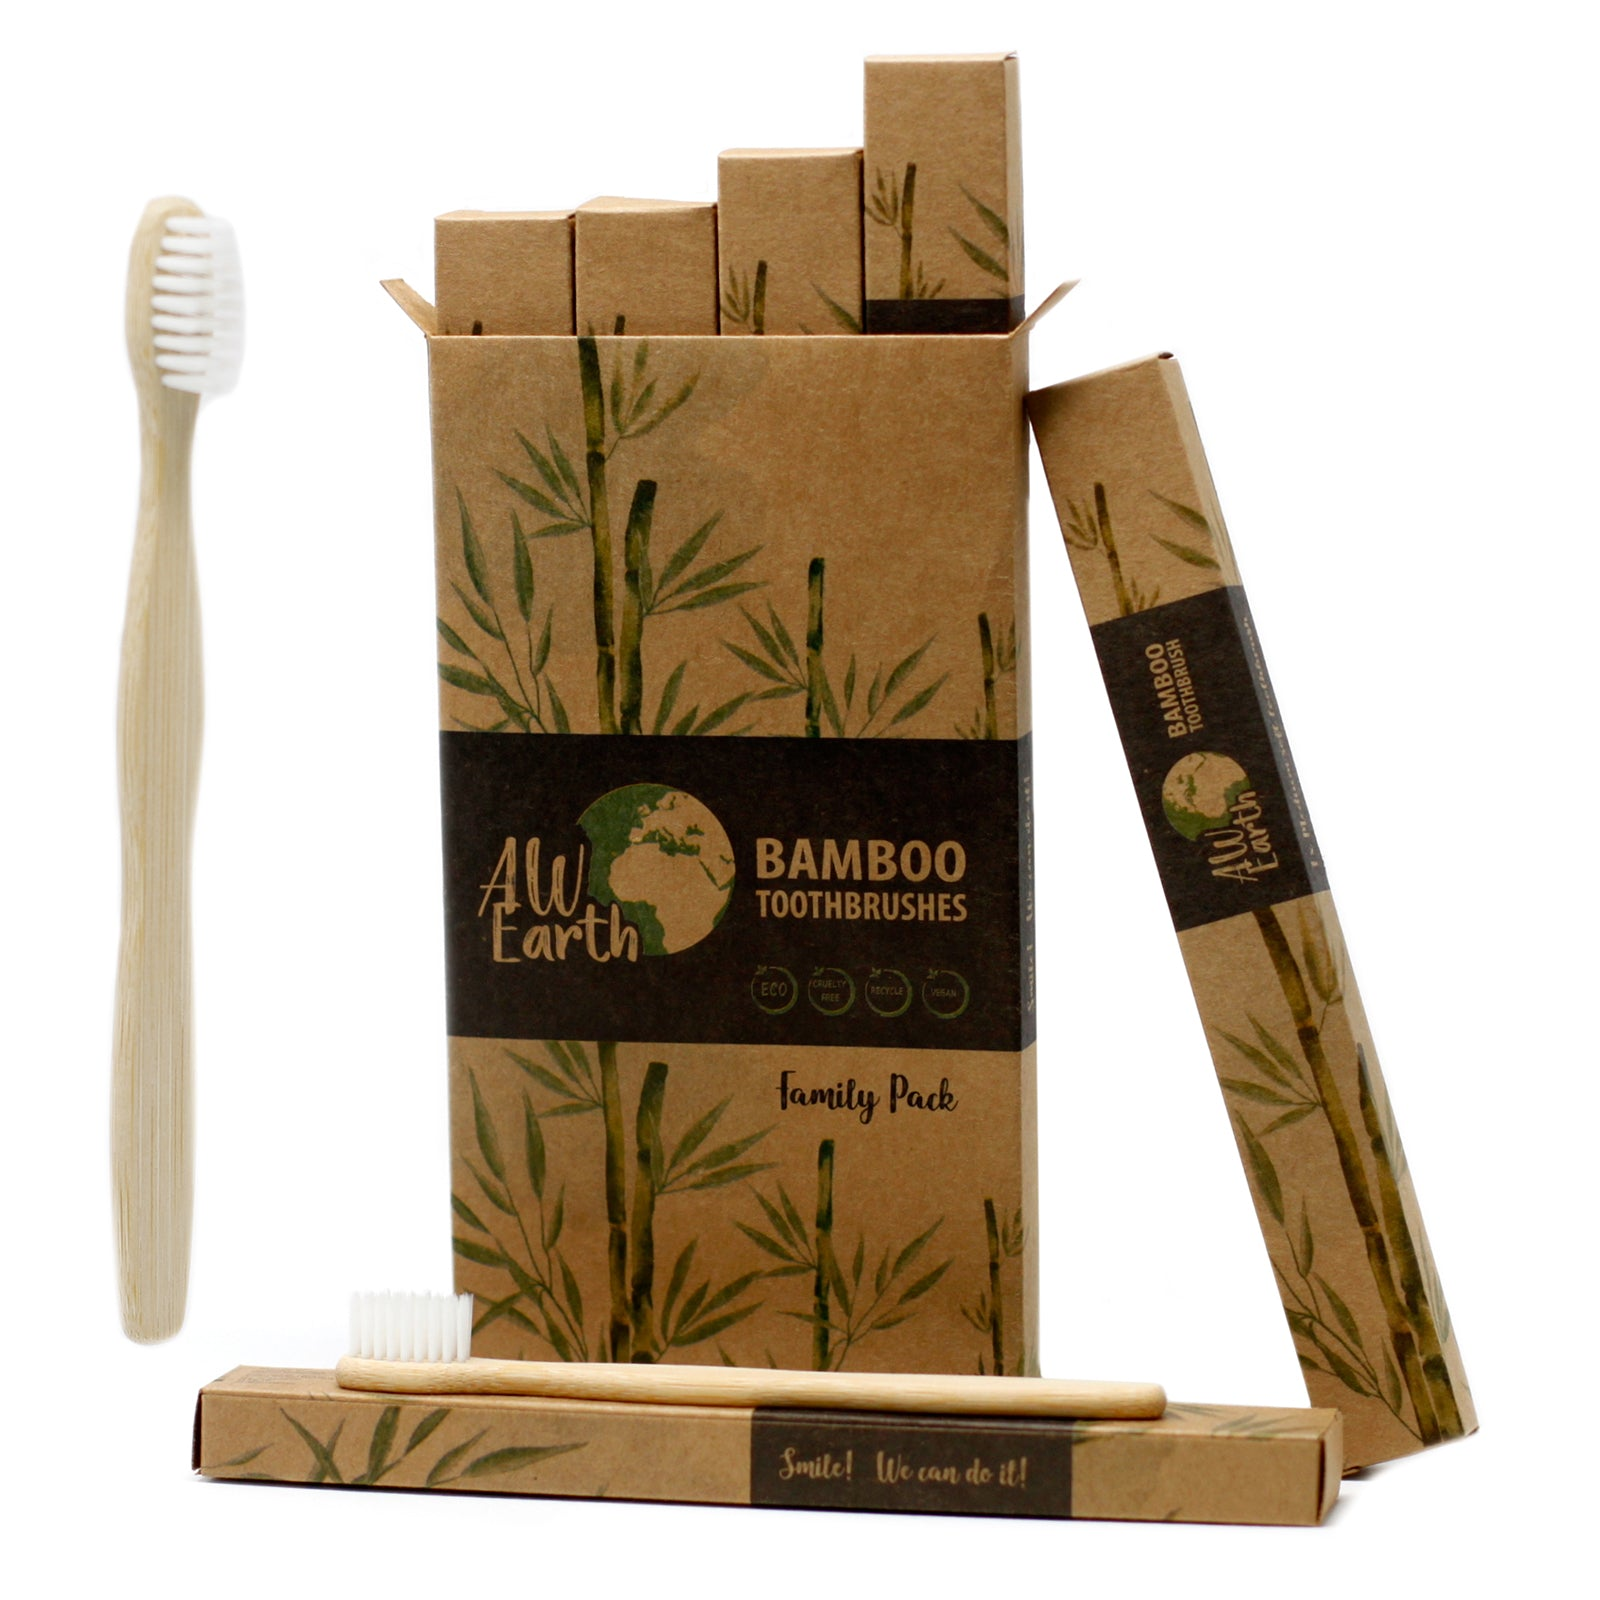 Bamboo Toothbrushes - Family Pack